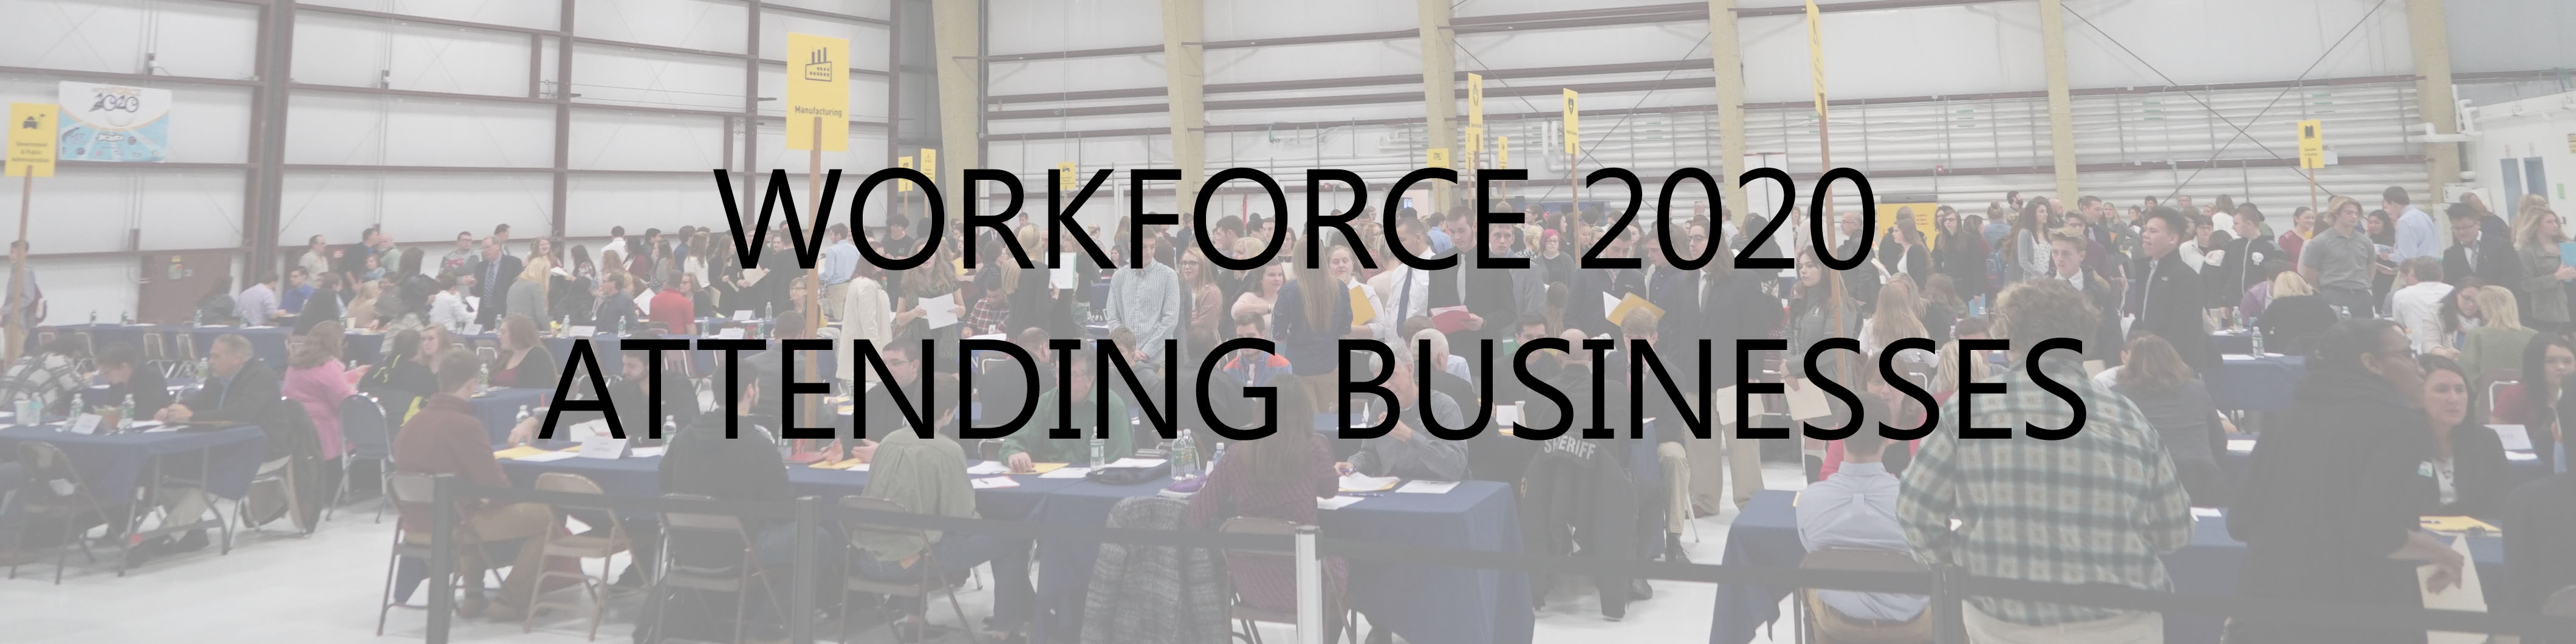 Workforce 2020 Participating Businesses